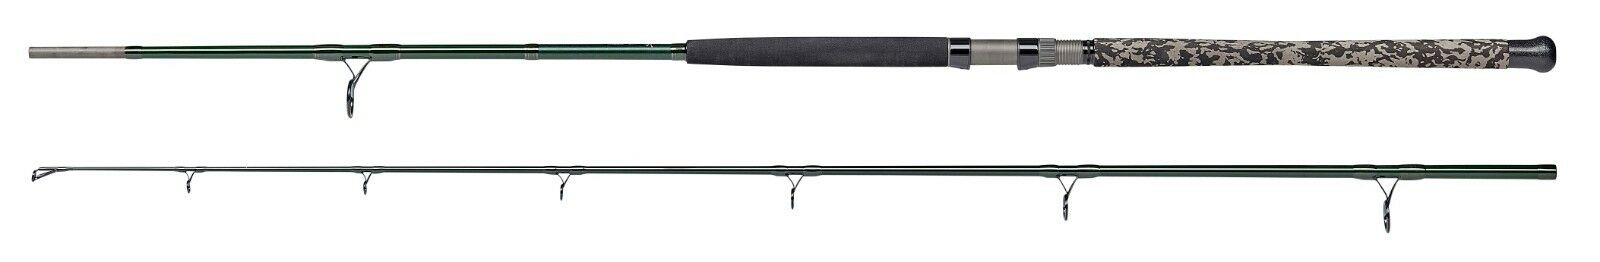 DAM Allround 285 Mad cat Green series Specimen Catfish fishing rod